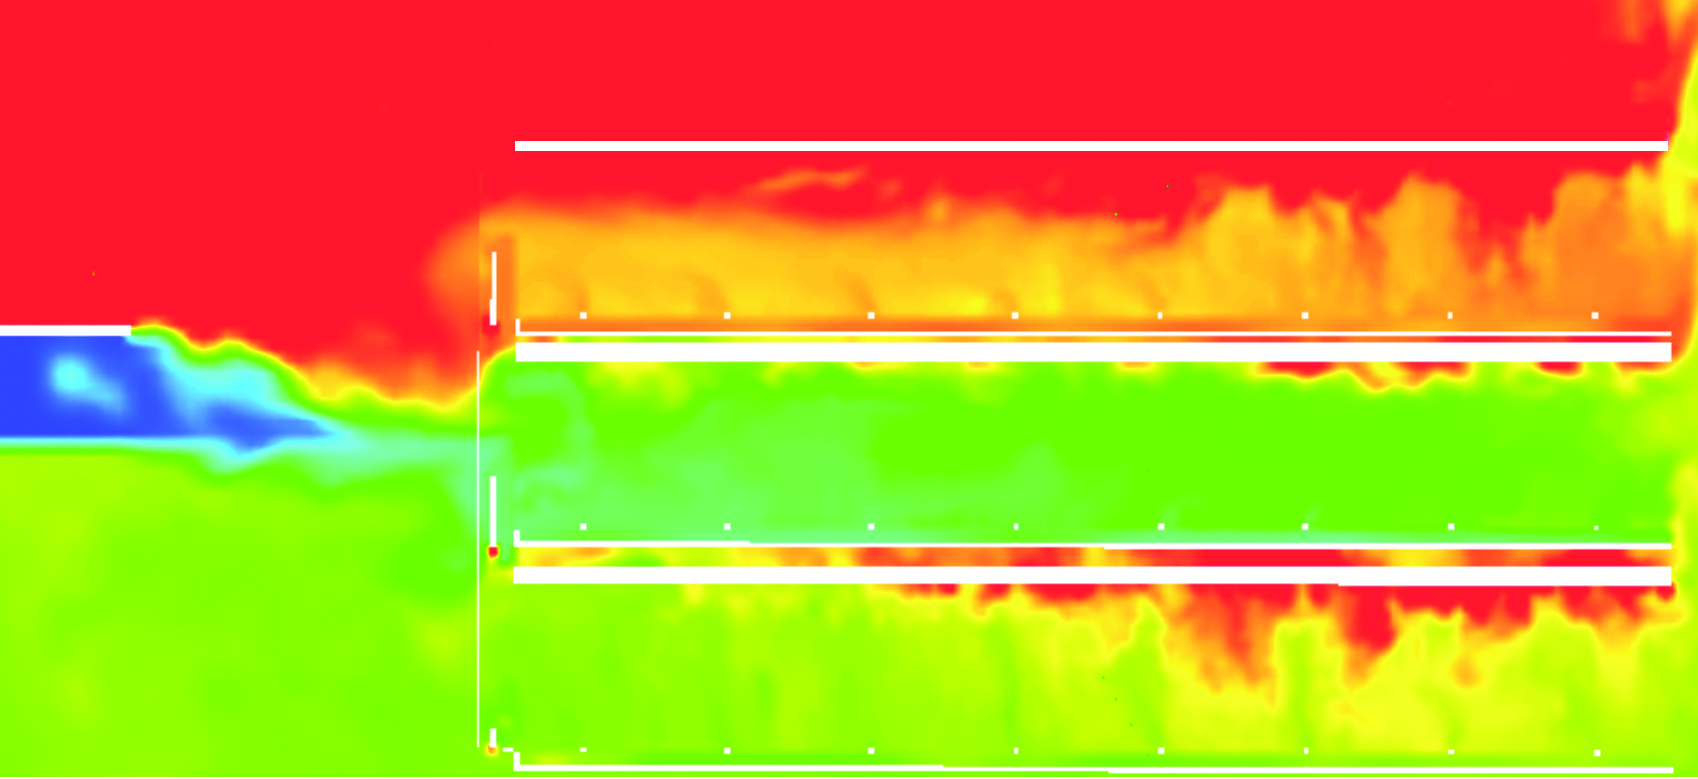 Sample CFD temperature model of a traditional vertically stacked grow that demonstrates how heat accumulates.